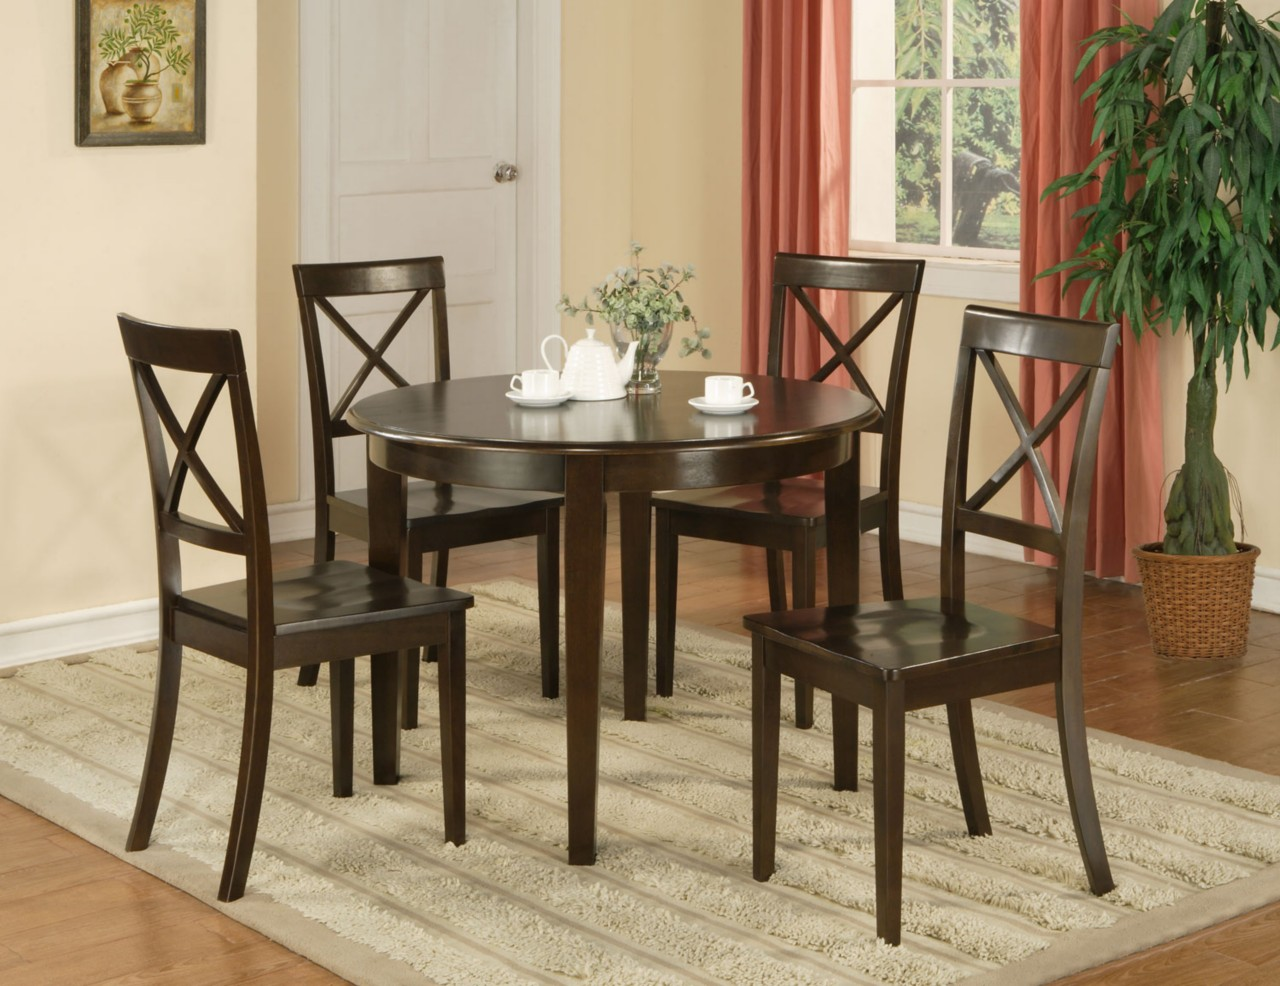 Round Wooden Kitchen Table Sets: 5 PC BOSTON ROUND DINETTE DINING TABLE & 4 WOOD SEAT